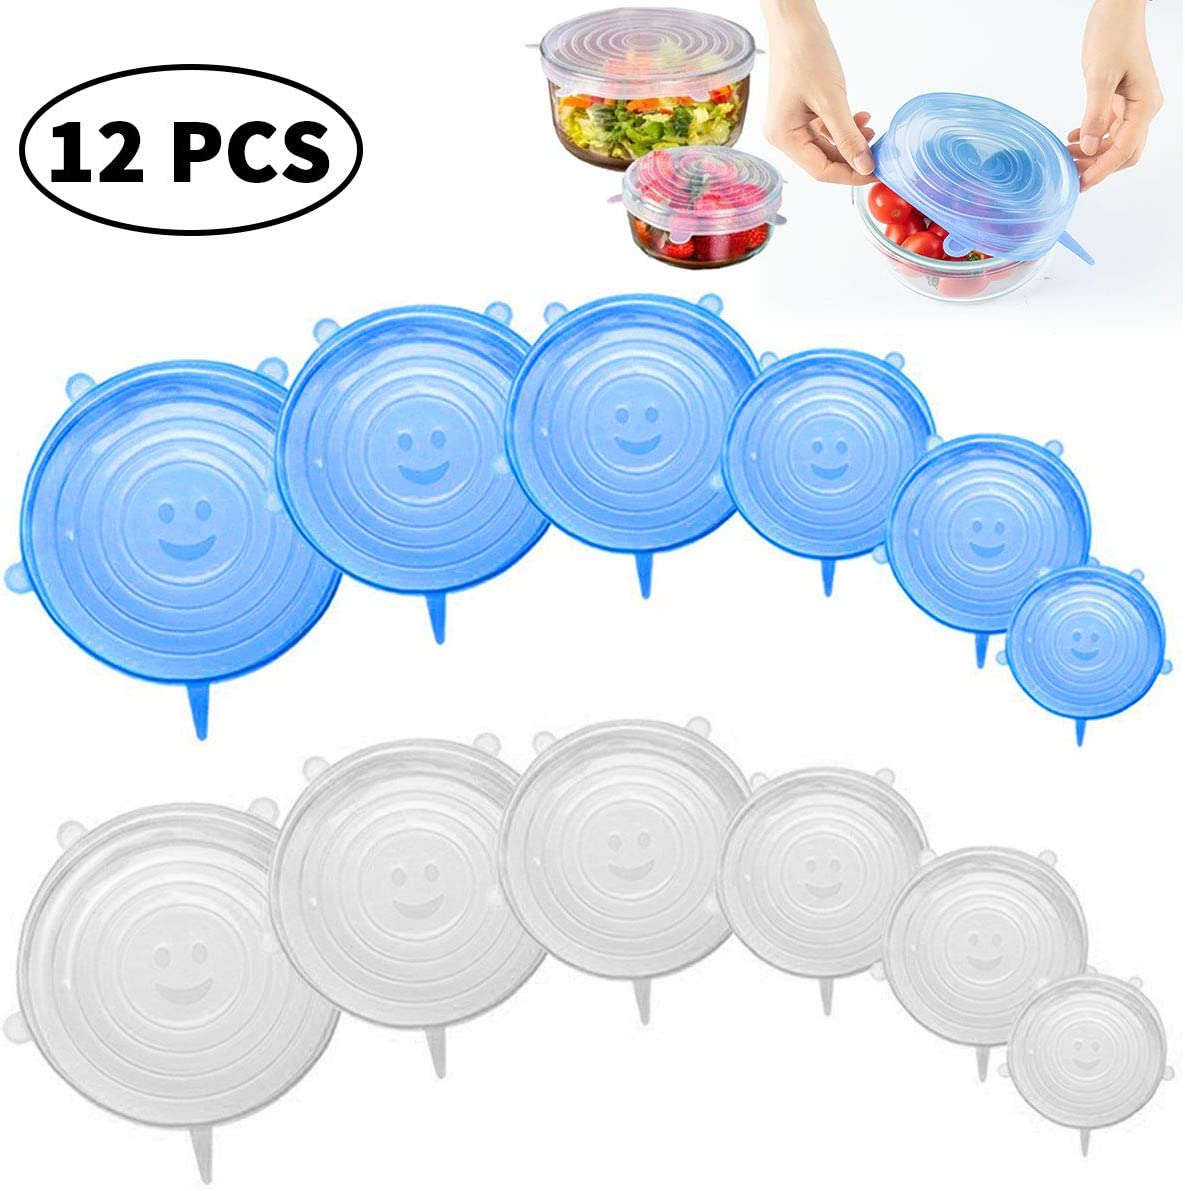 Silicone Storage Lids Reusable Food Cover Wraps